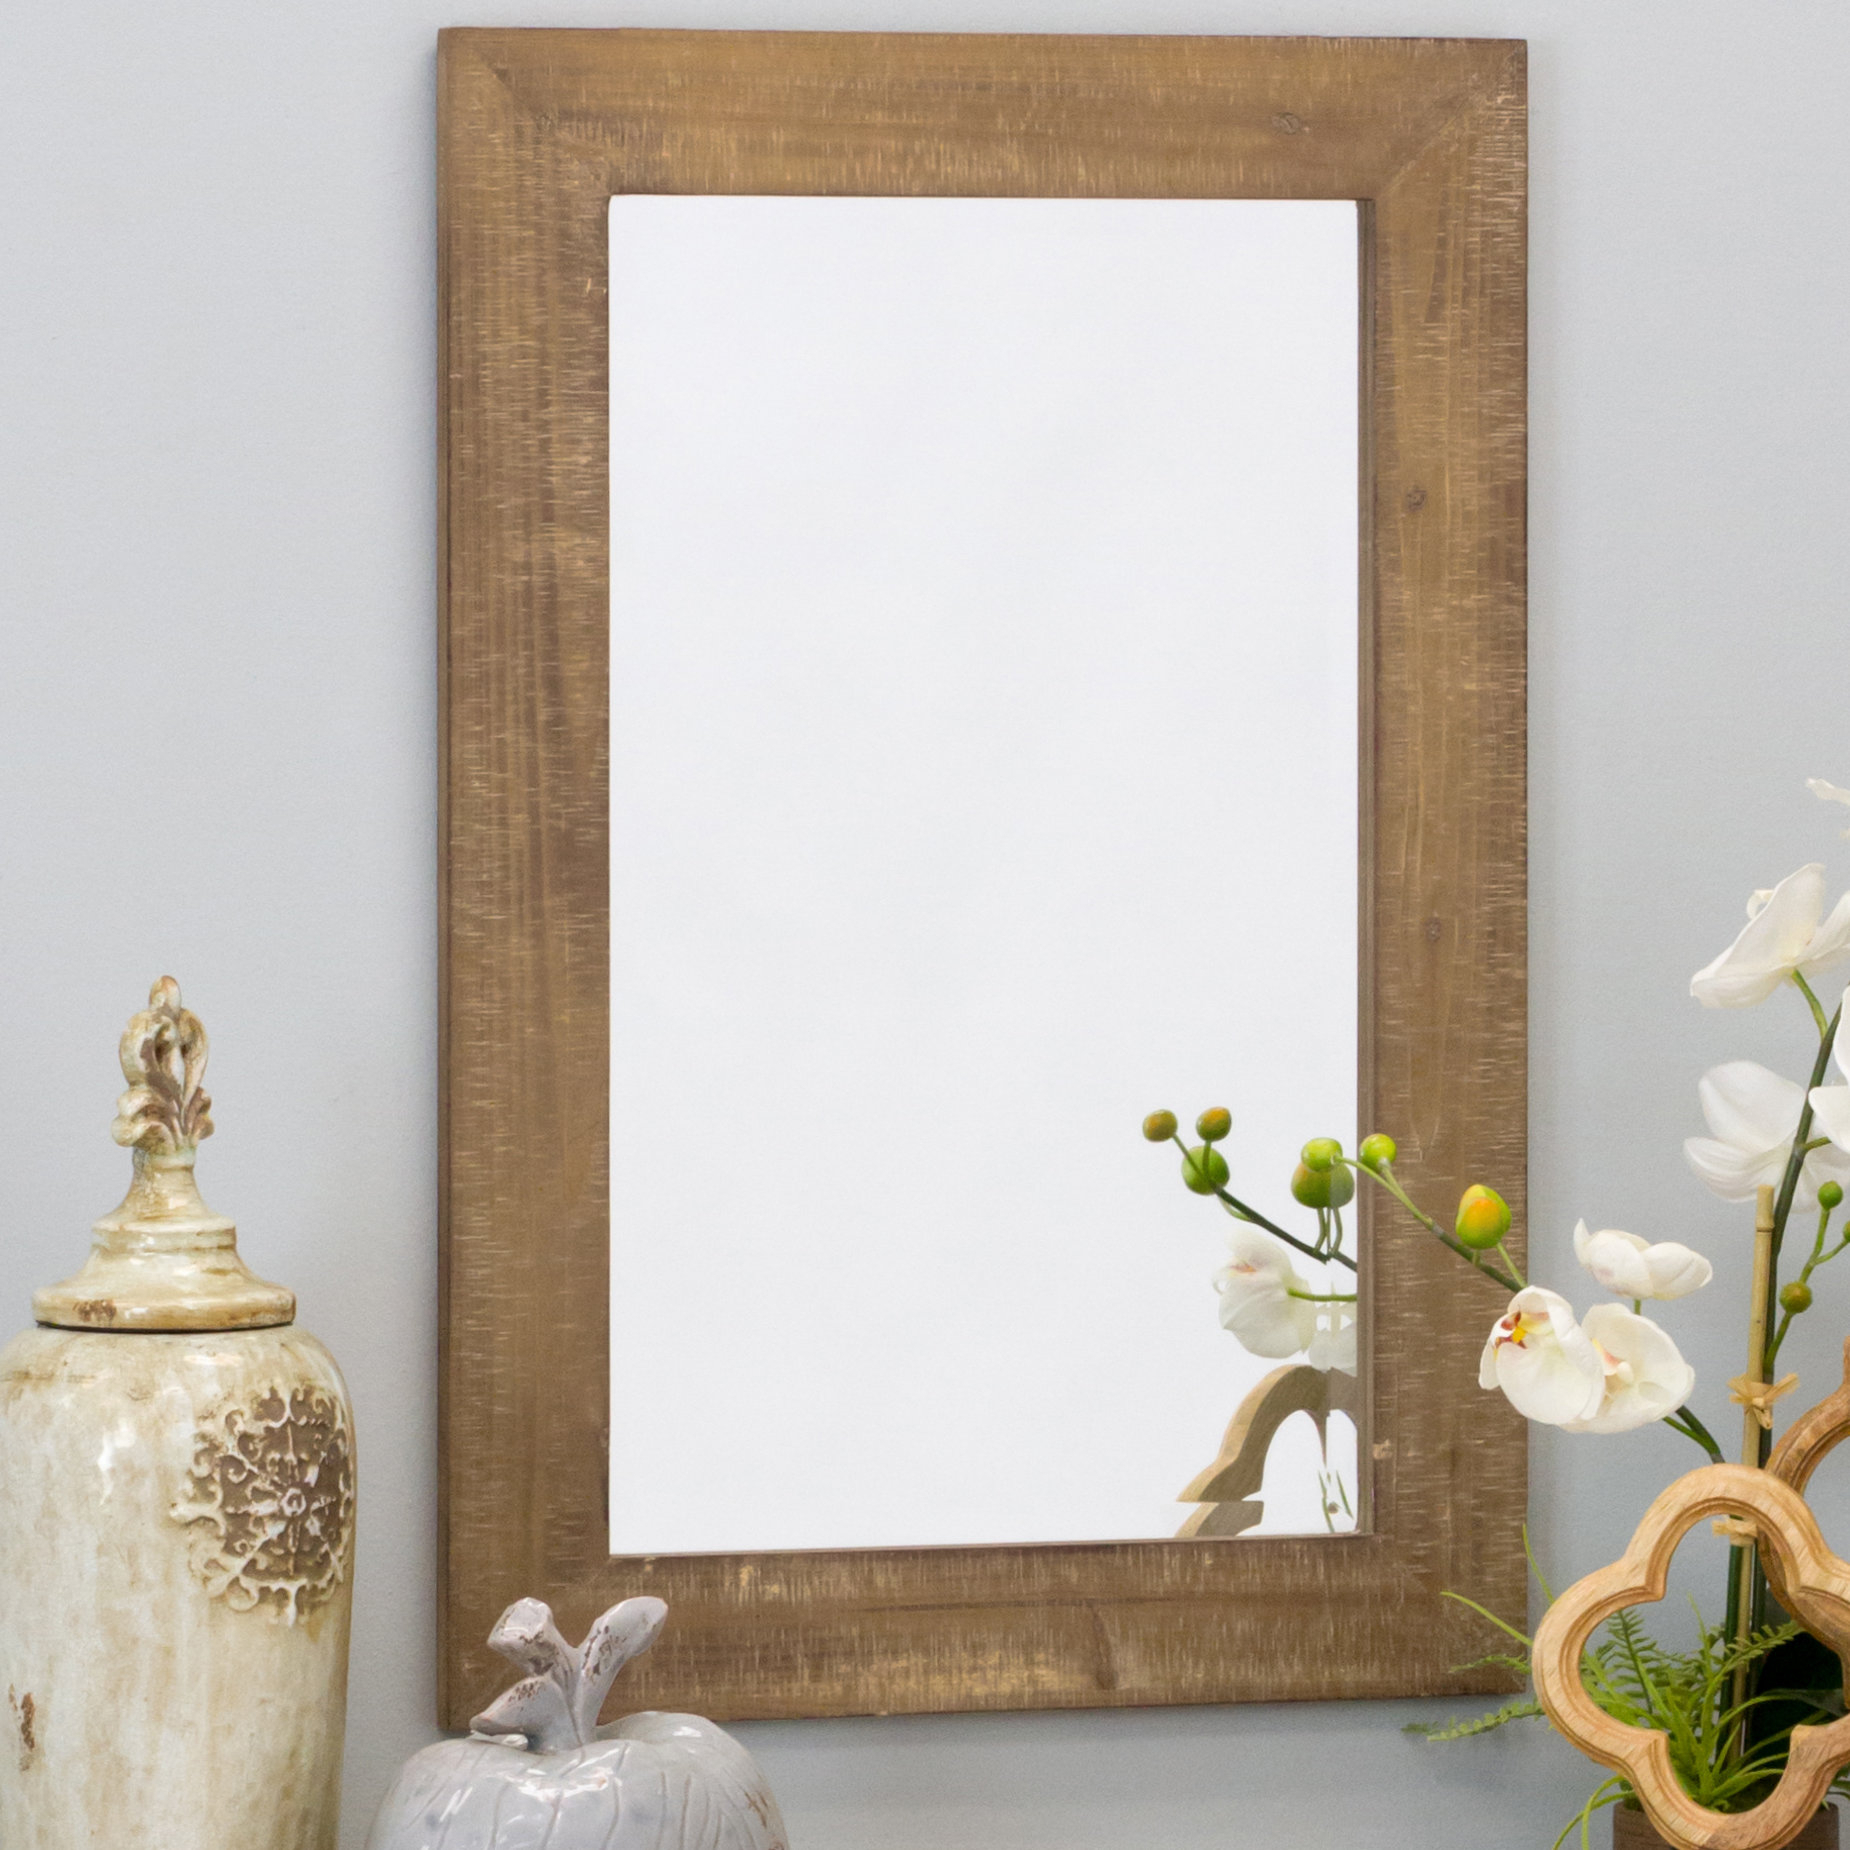 Union Rustic Longwood Rustic Beveled Accent Mirror inside Maude Accent Mirrors (Image 26 of 30)